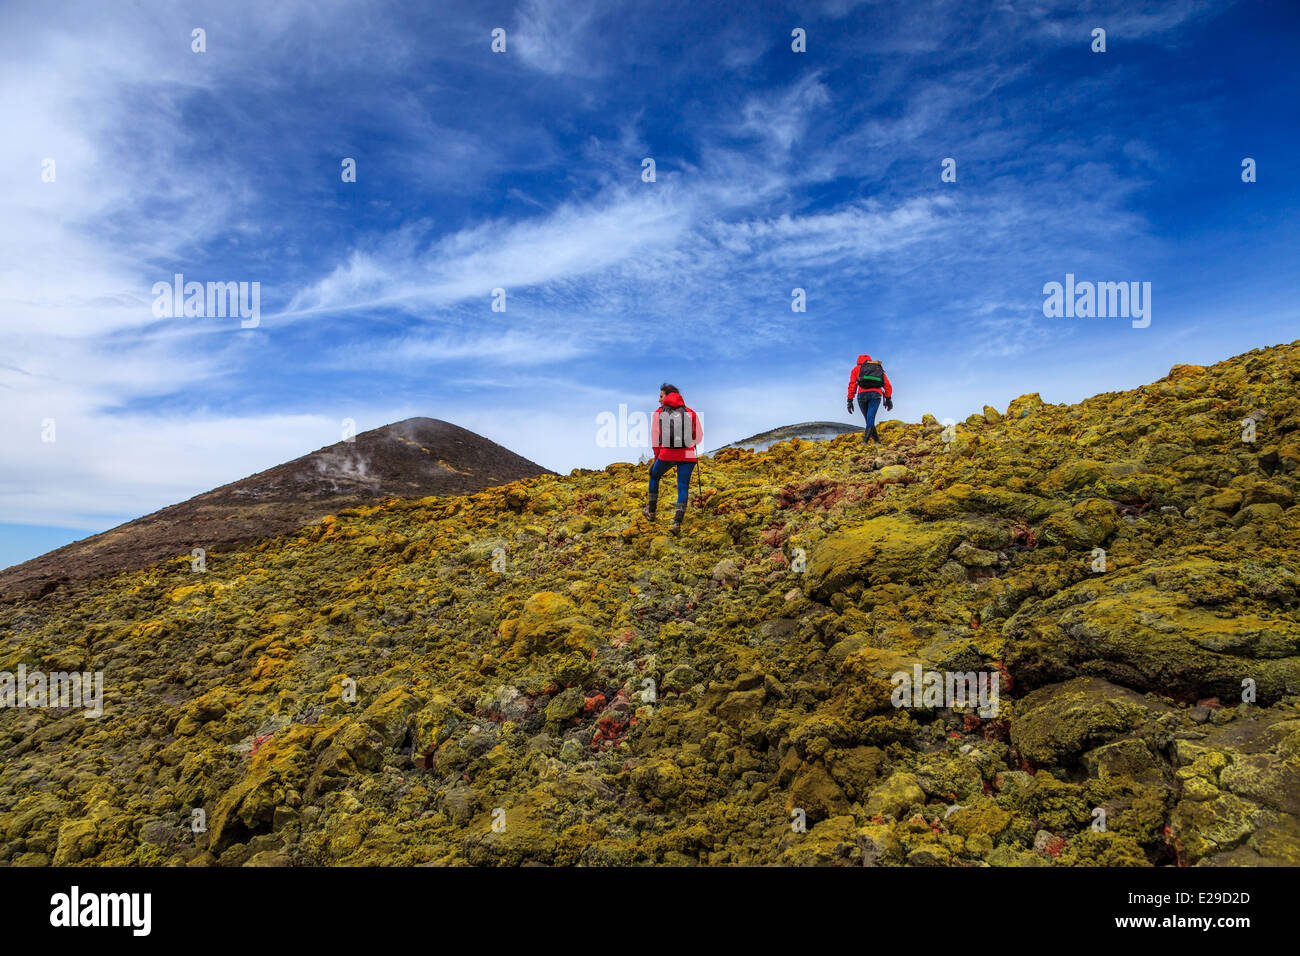 Hikers reaching summit of Mount Etna - Stock Image